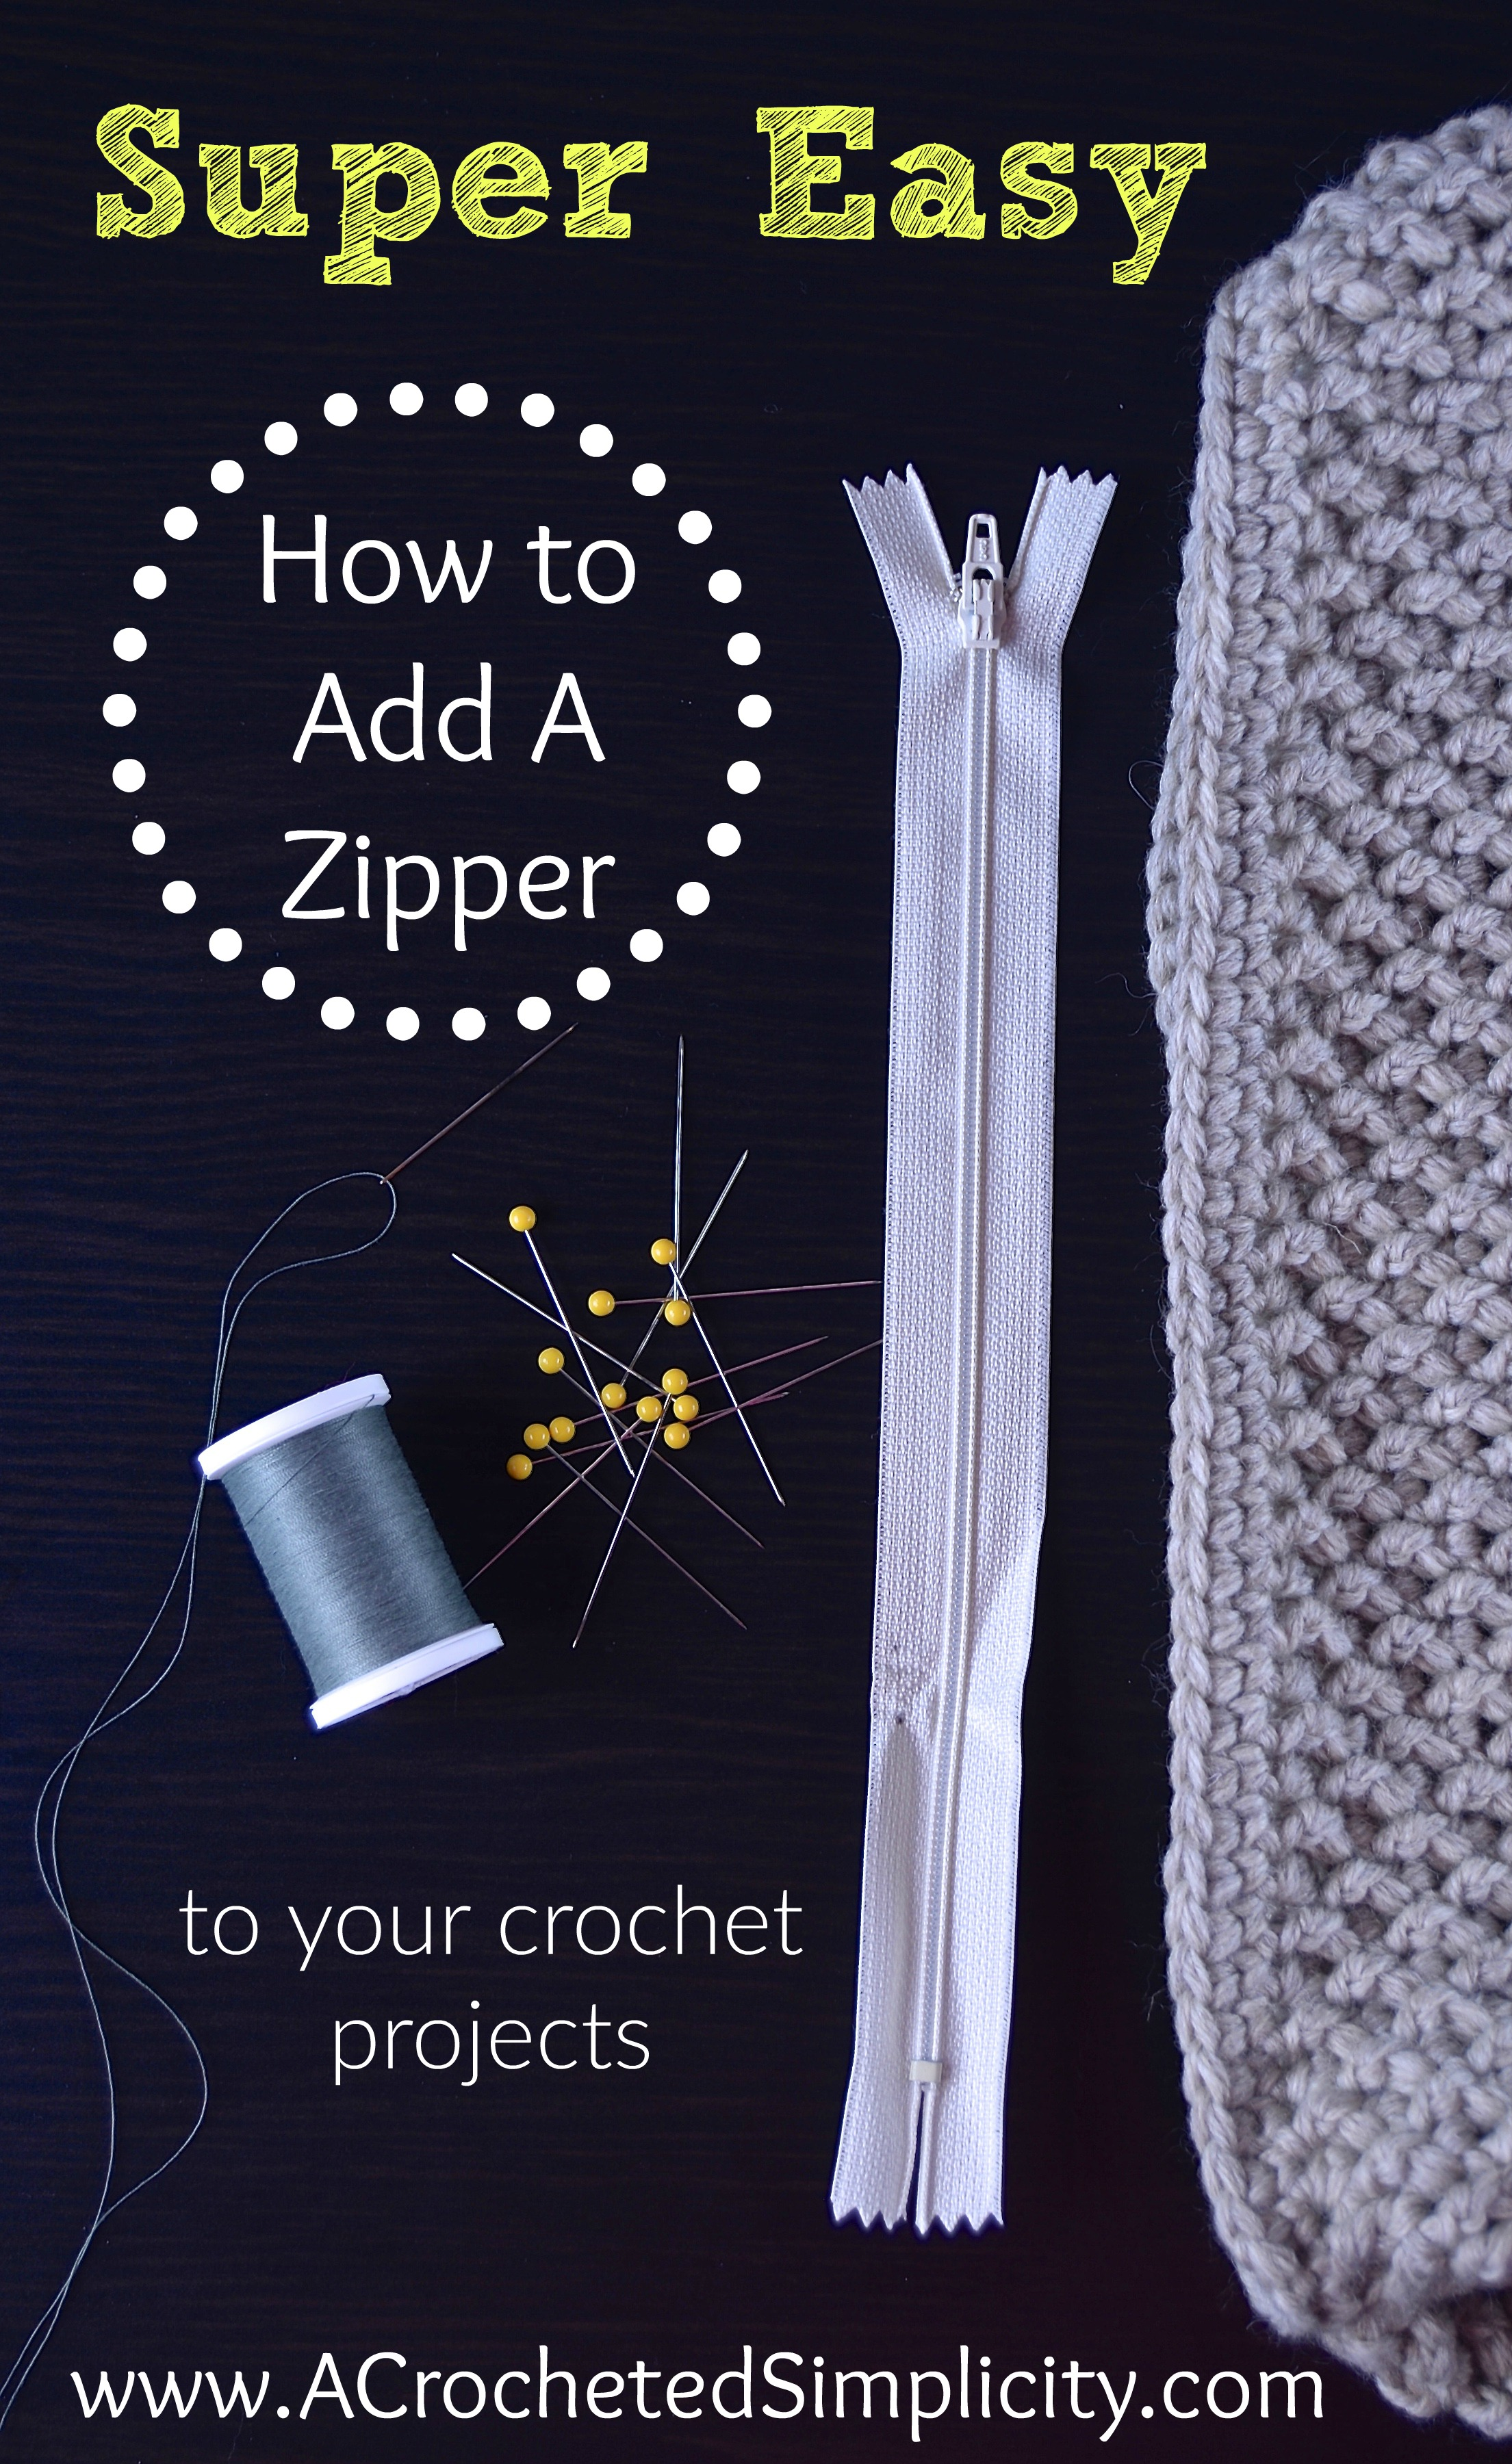 Super Easy Way To Add A Zipper To Your Crochet Projects A Crocheted Simplicity